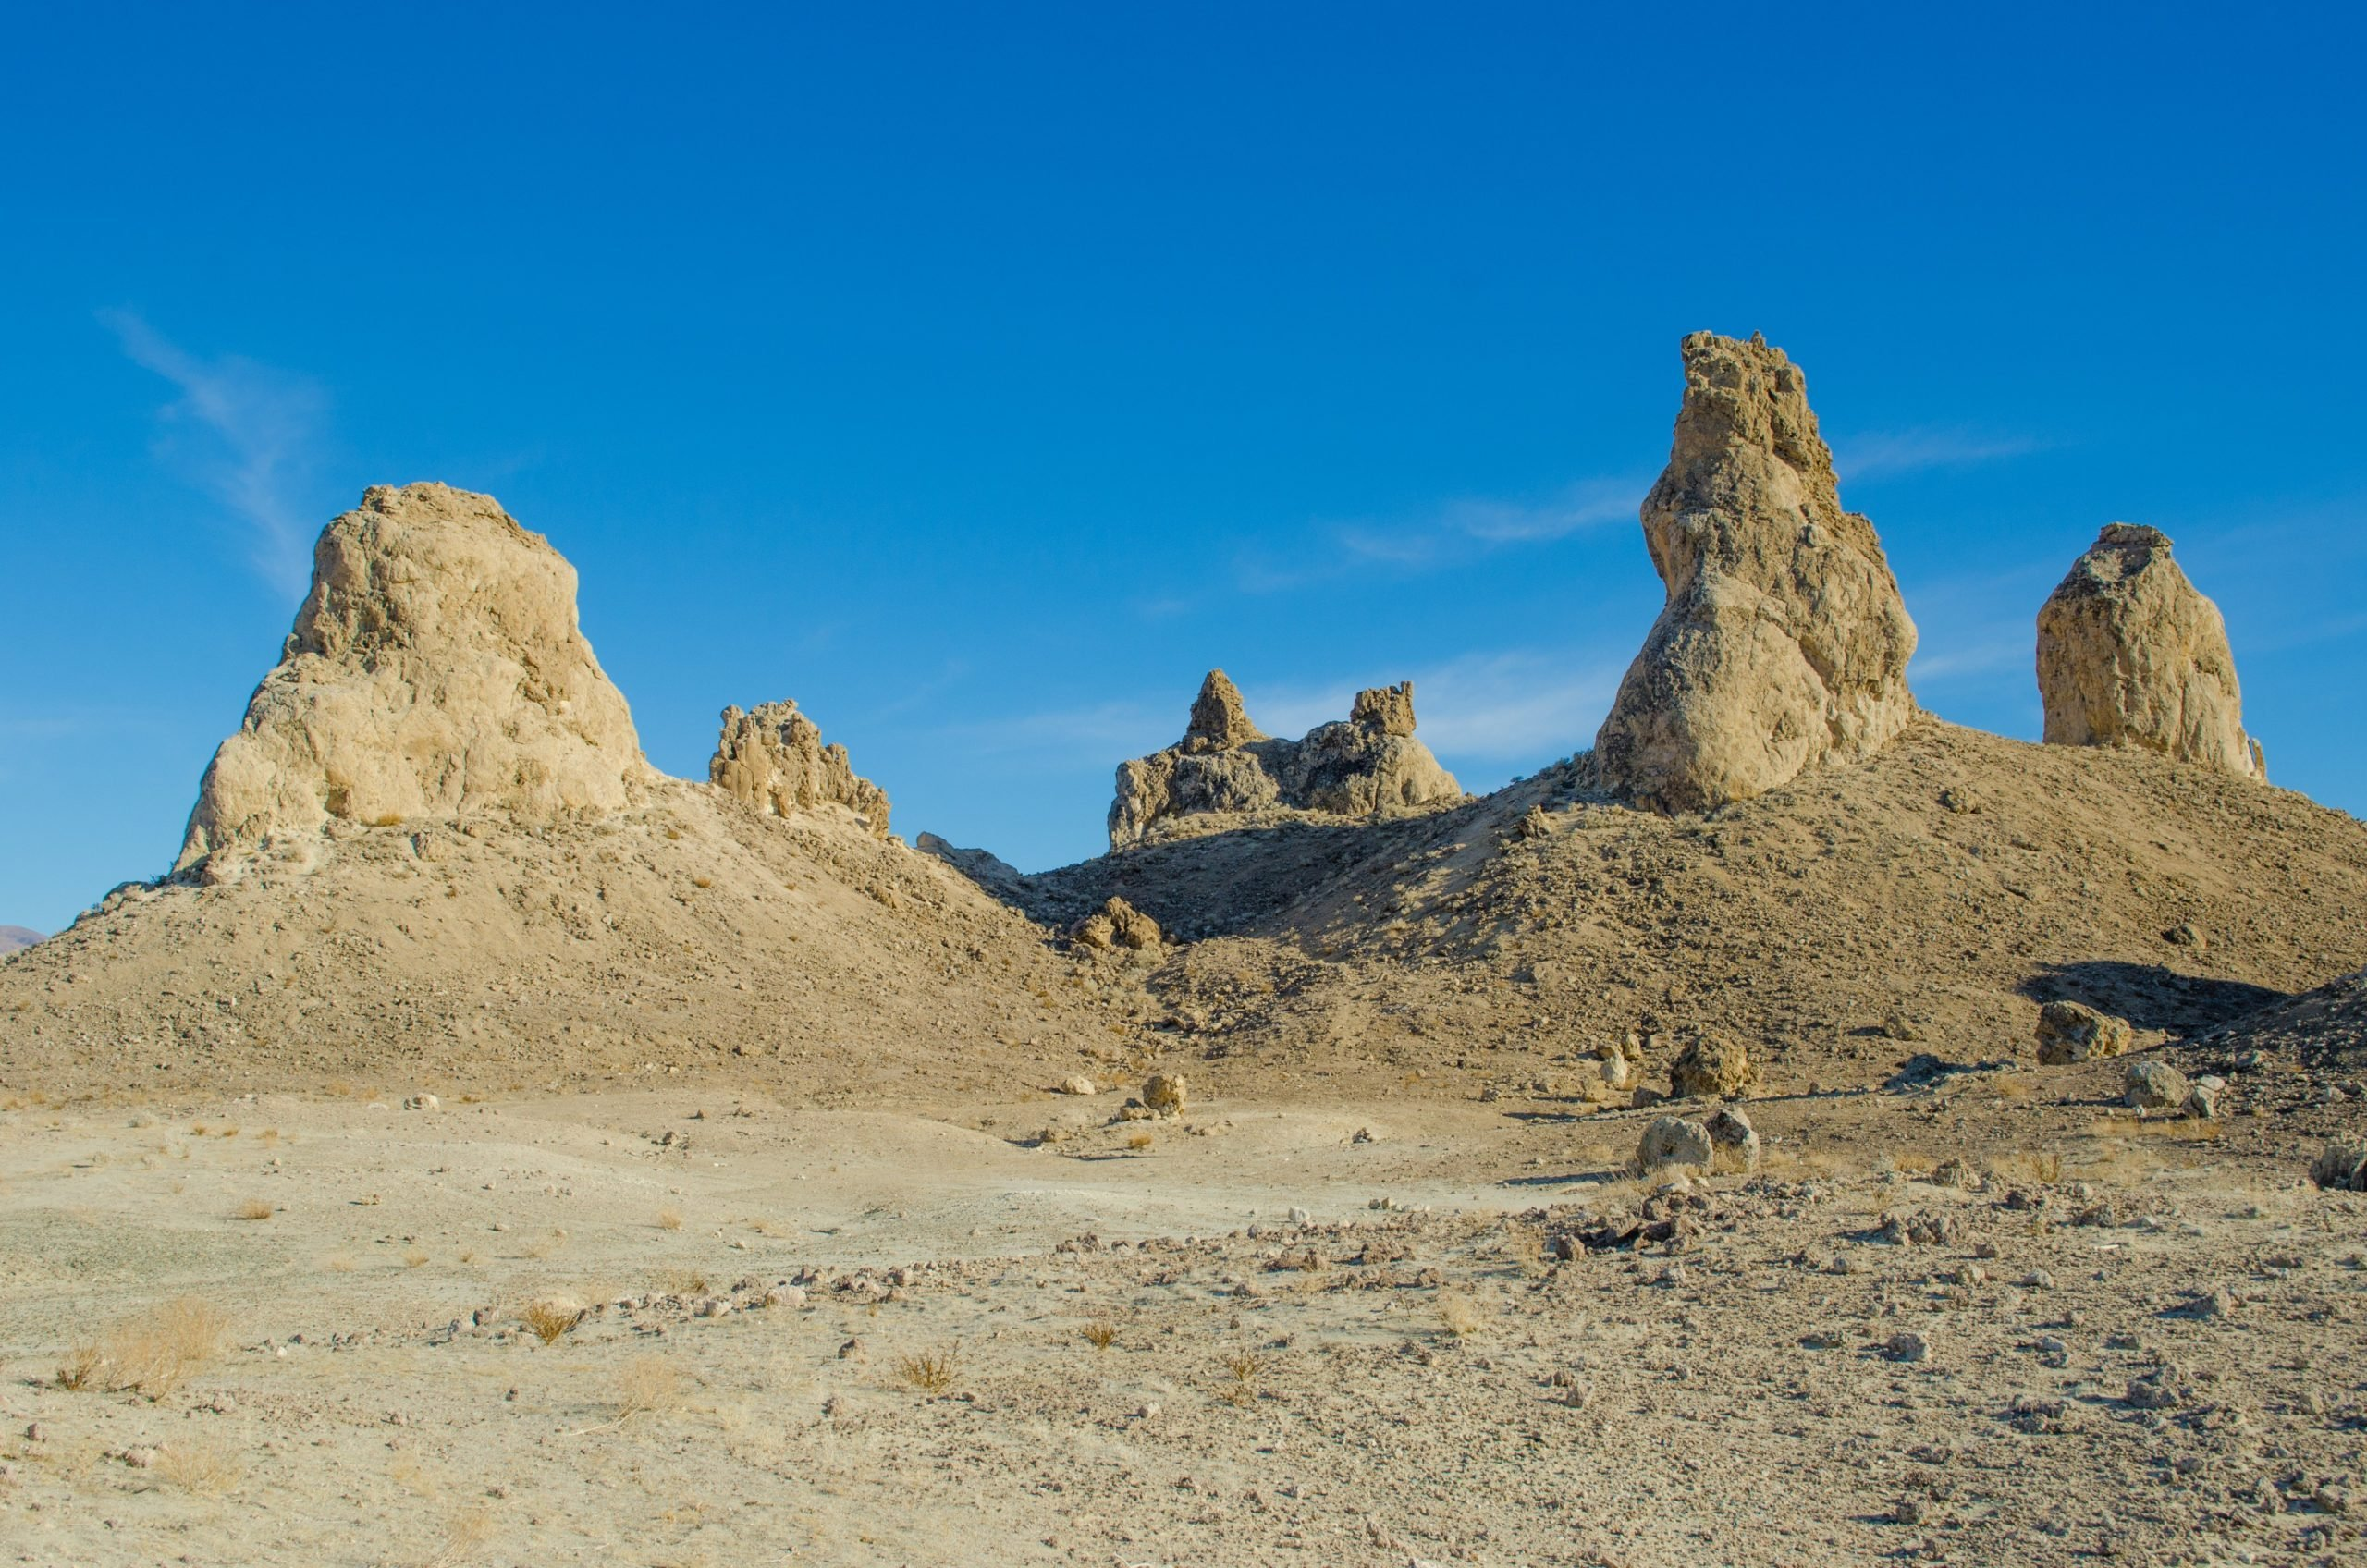 The Trona Pinnacles are tufa formations